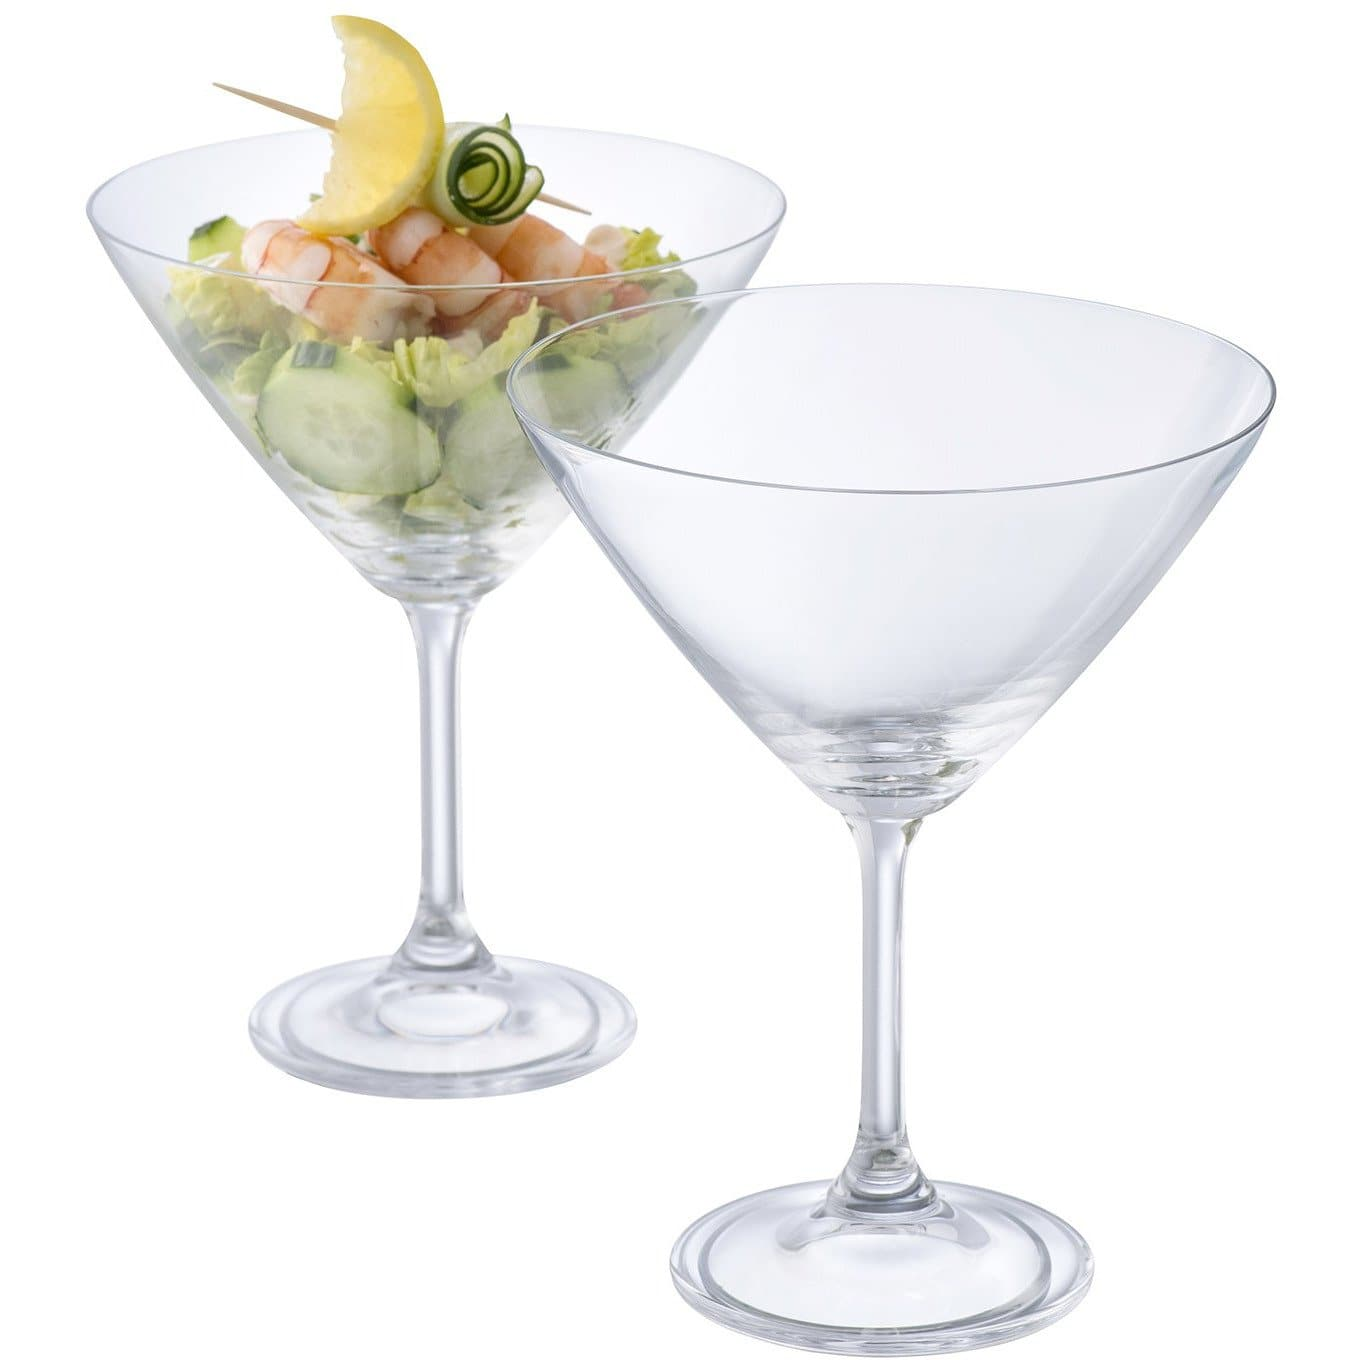 NEW Elegance Martini/Cocktail Pair